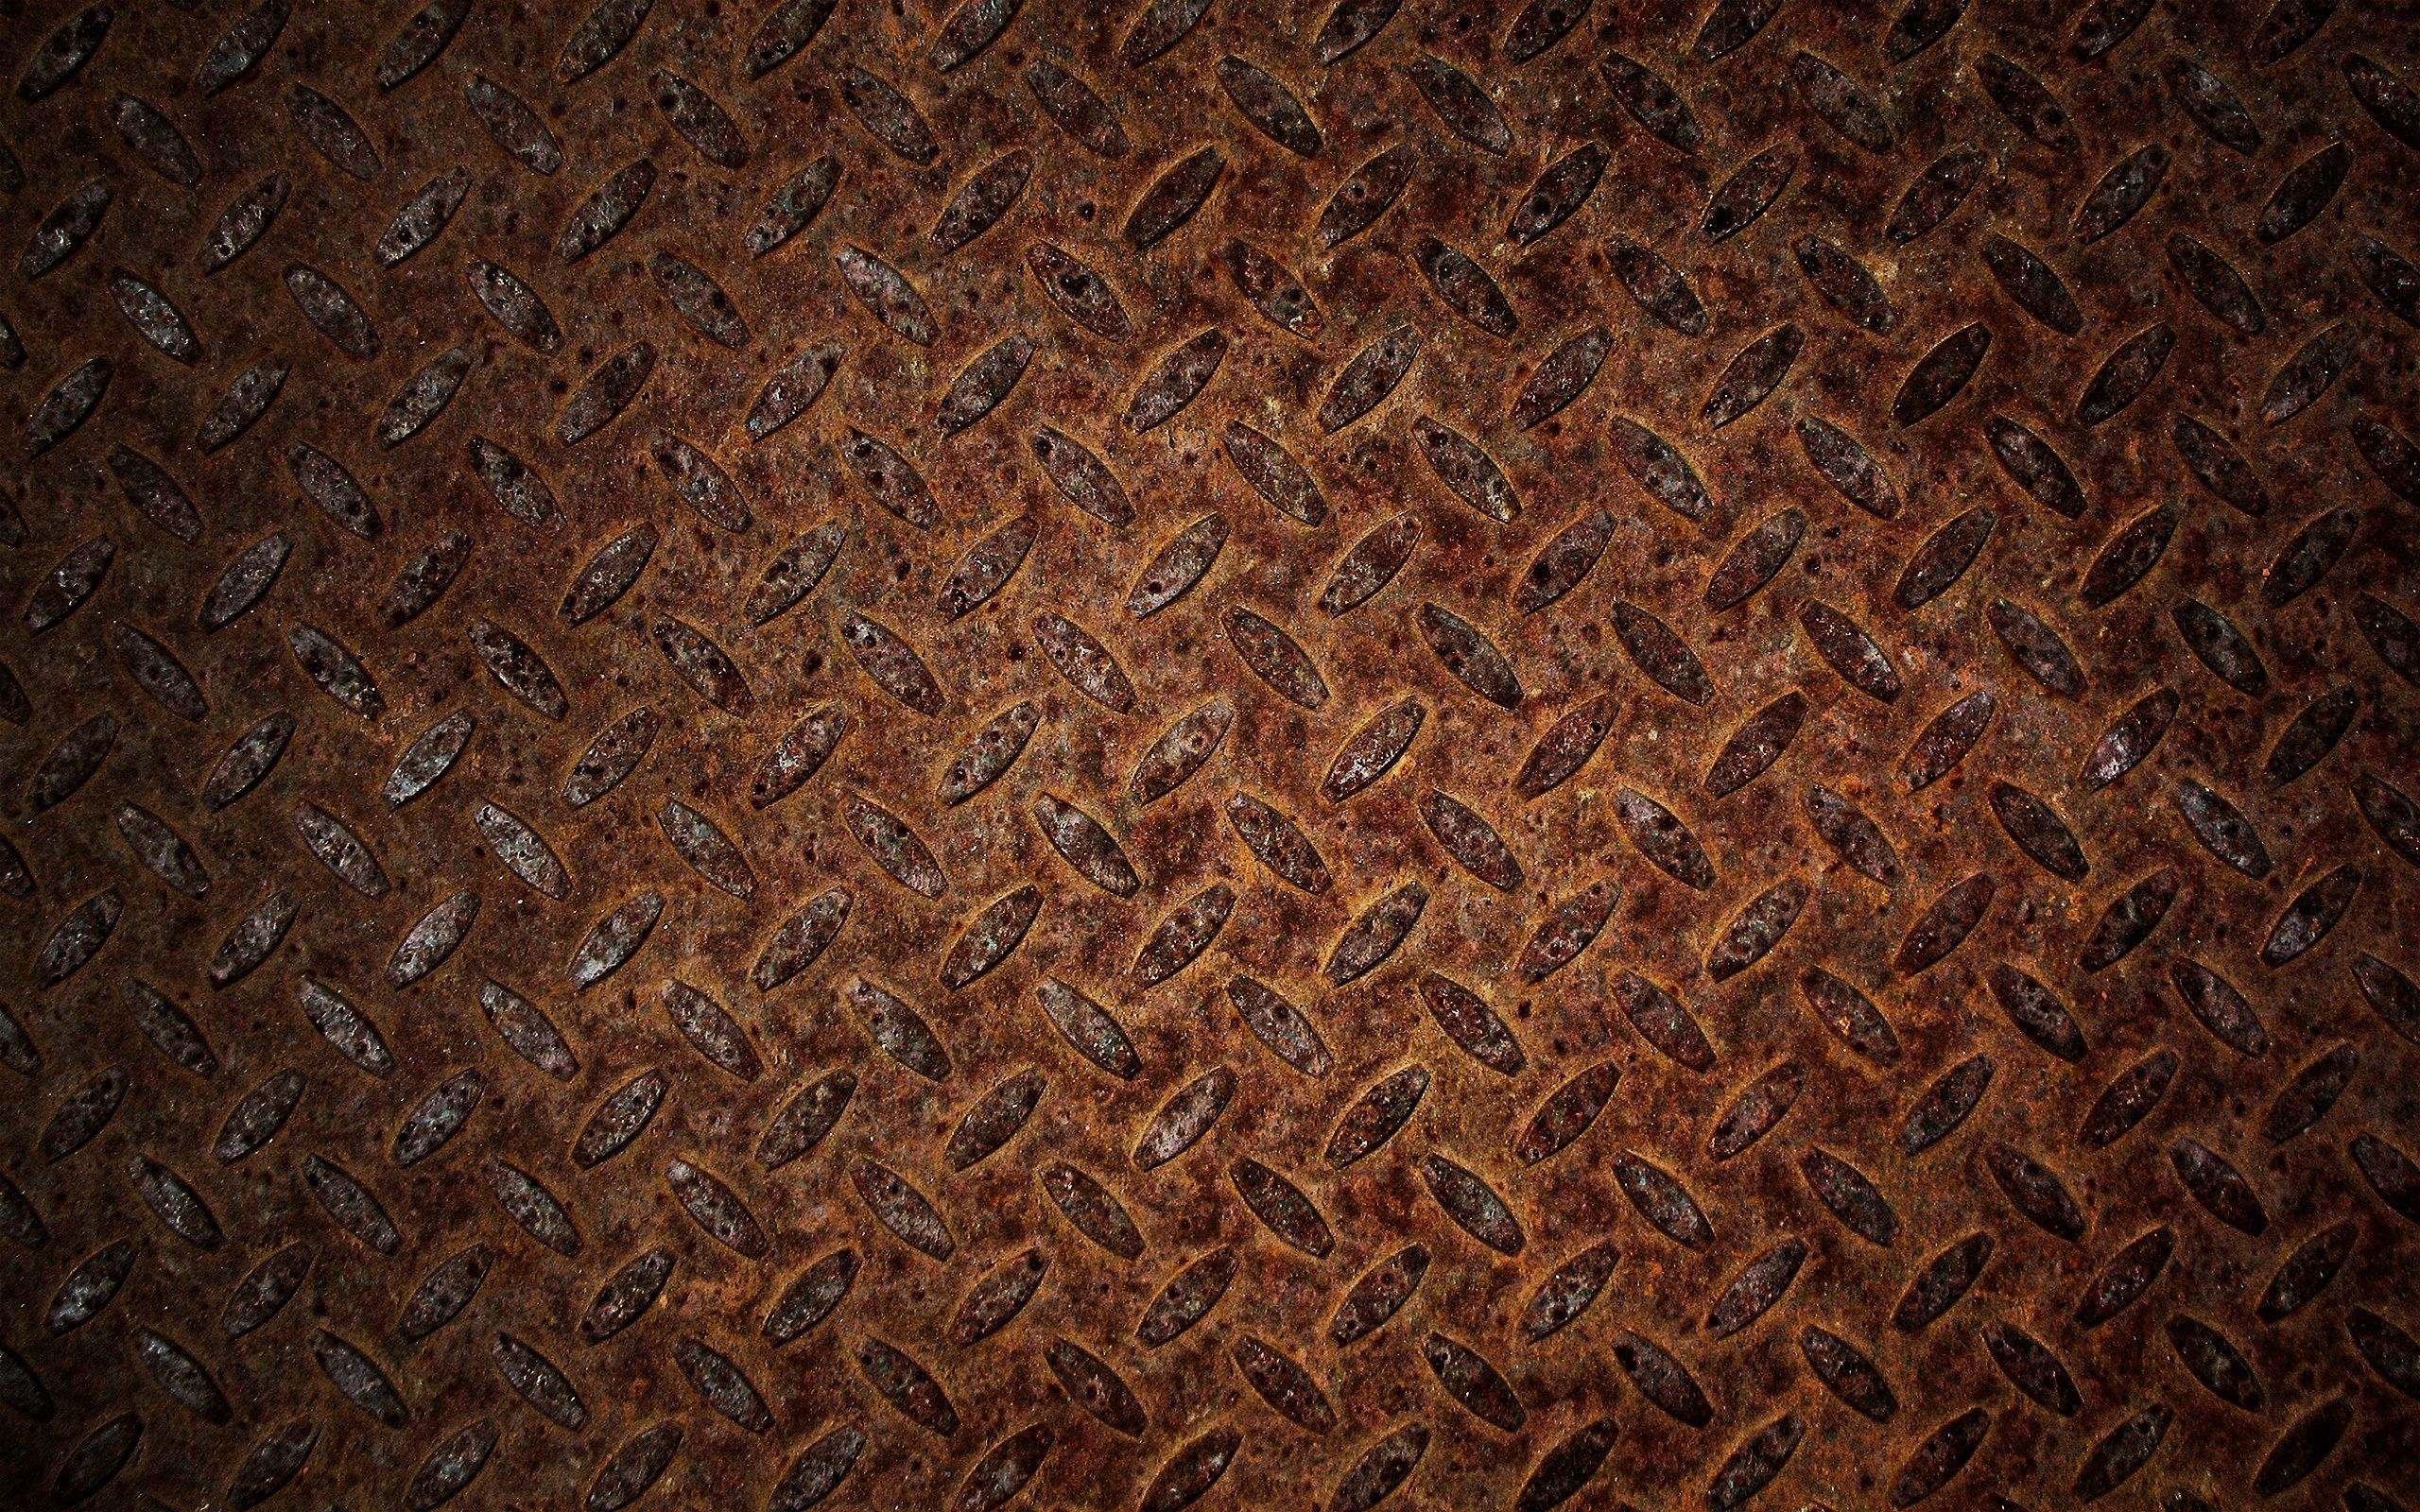 Texture Under The Rusty Sheet 2560x1600 Wallpapers Download